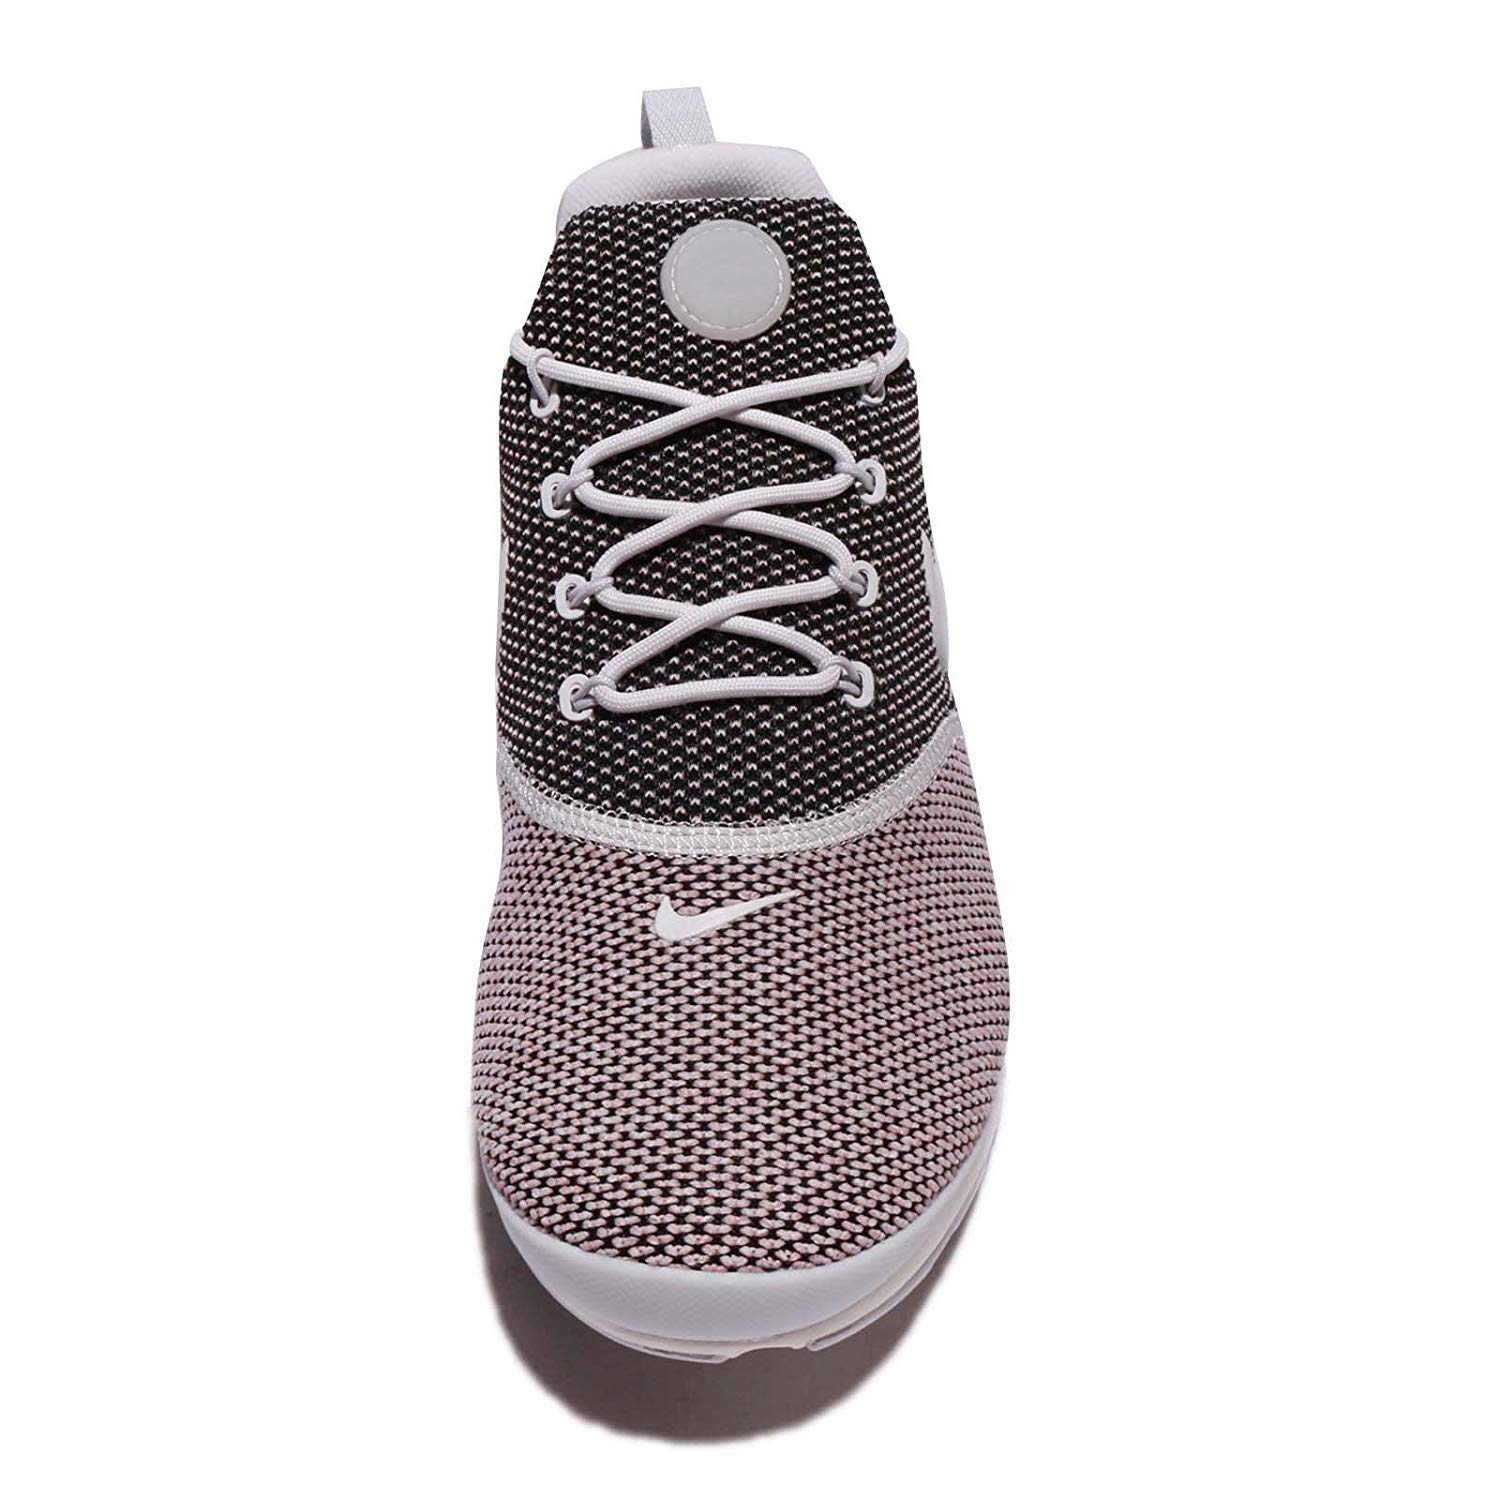 507da7364c2a NIKE 910570-005 Women WMNS Presto Fly Vast Grey Particle  NIKE   Amazon.co.uk  Shoes   Bags